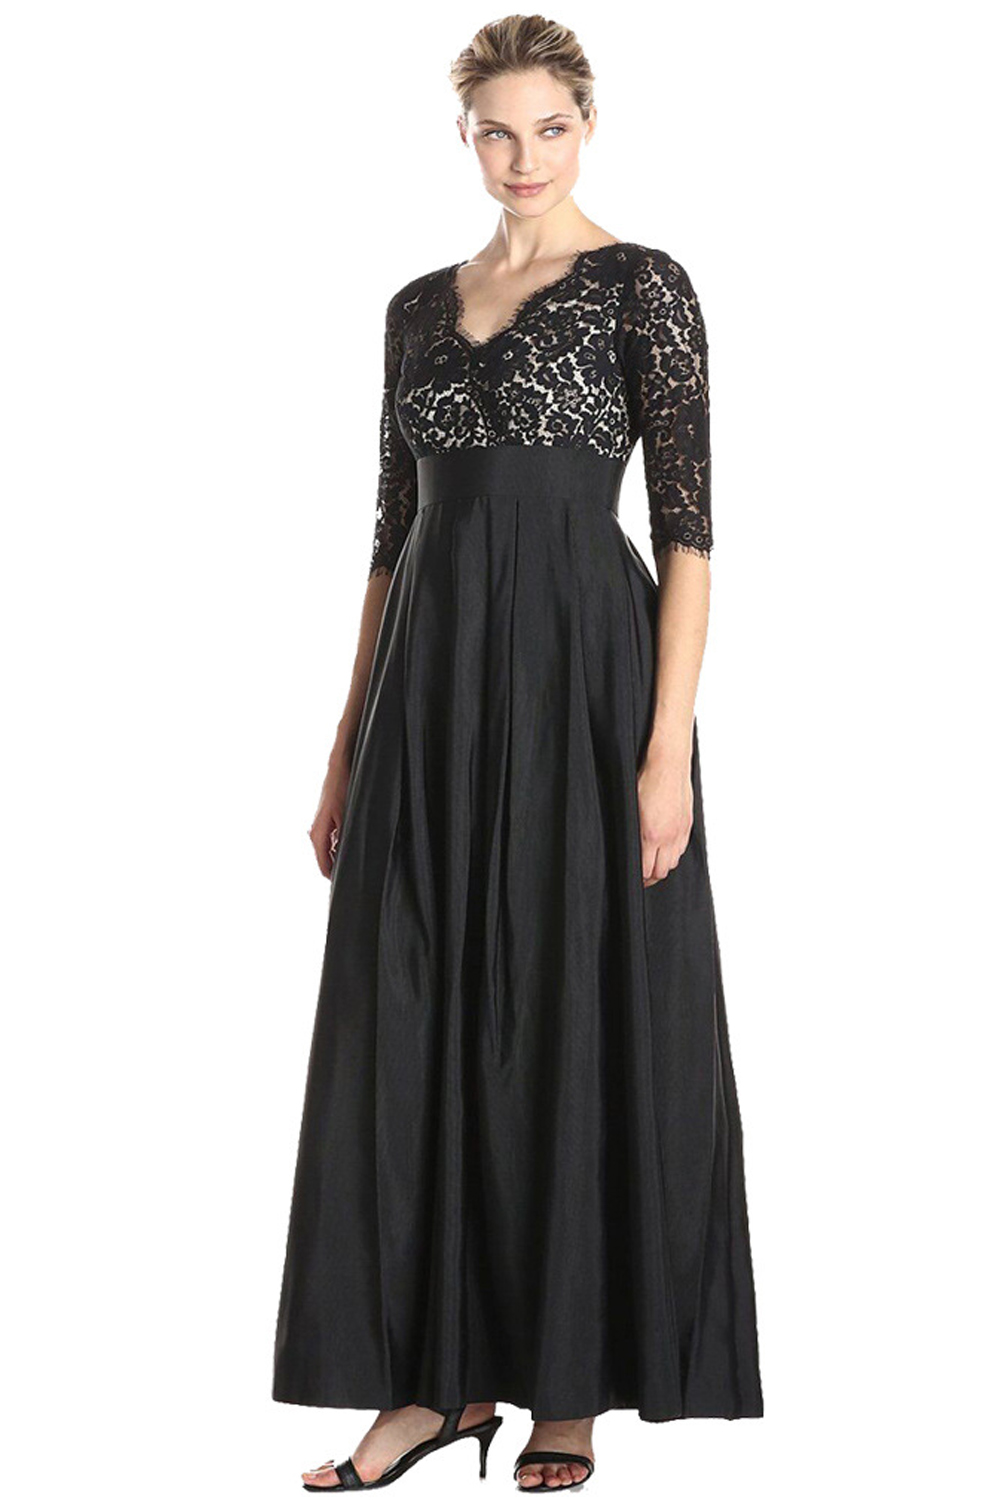 UNOMATCH WOMEN PLUS SIZE LACE STITCHING LONG PARTY MAXI DRESS BLACK